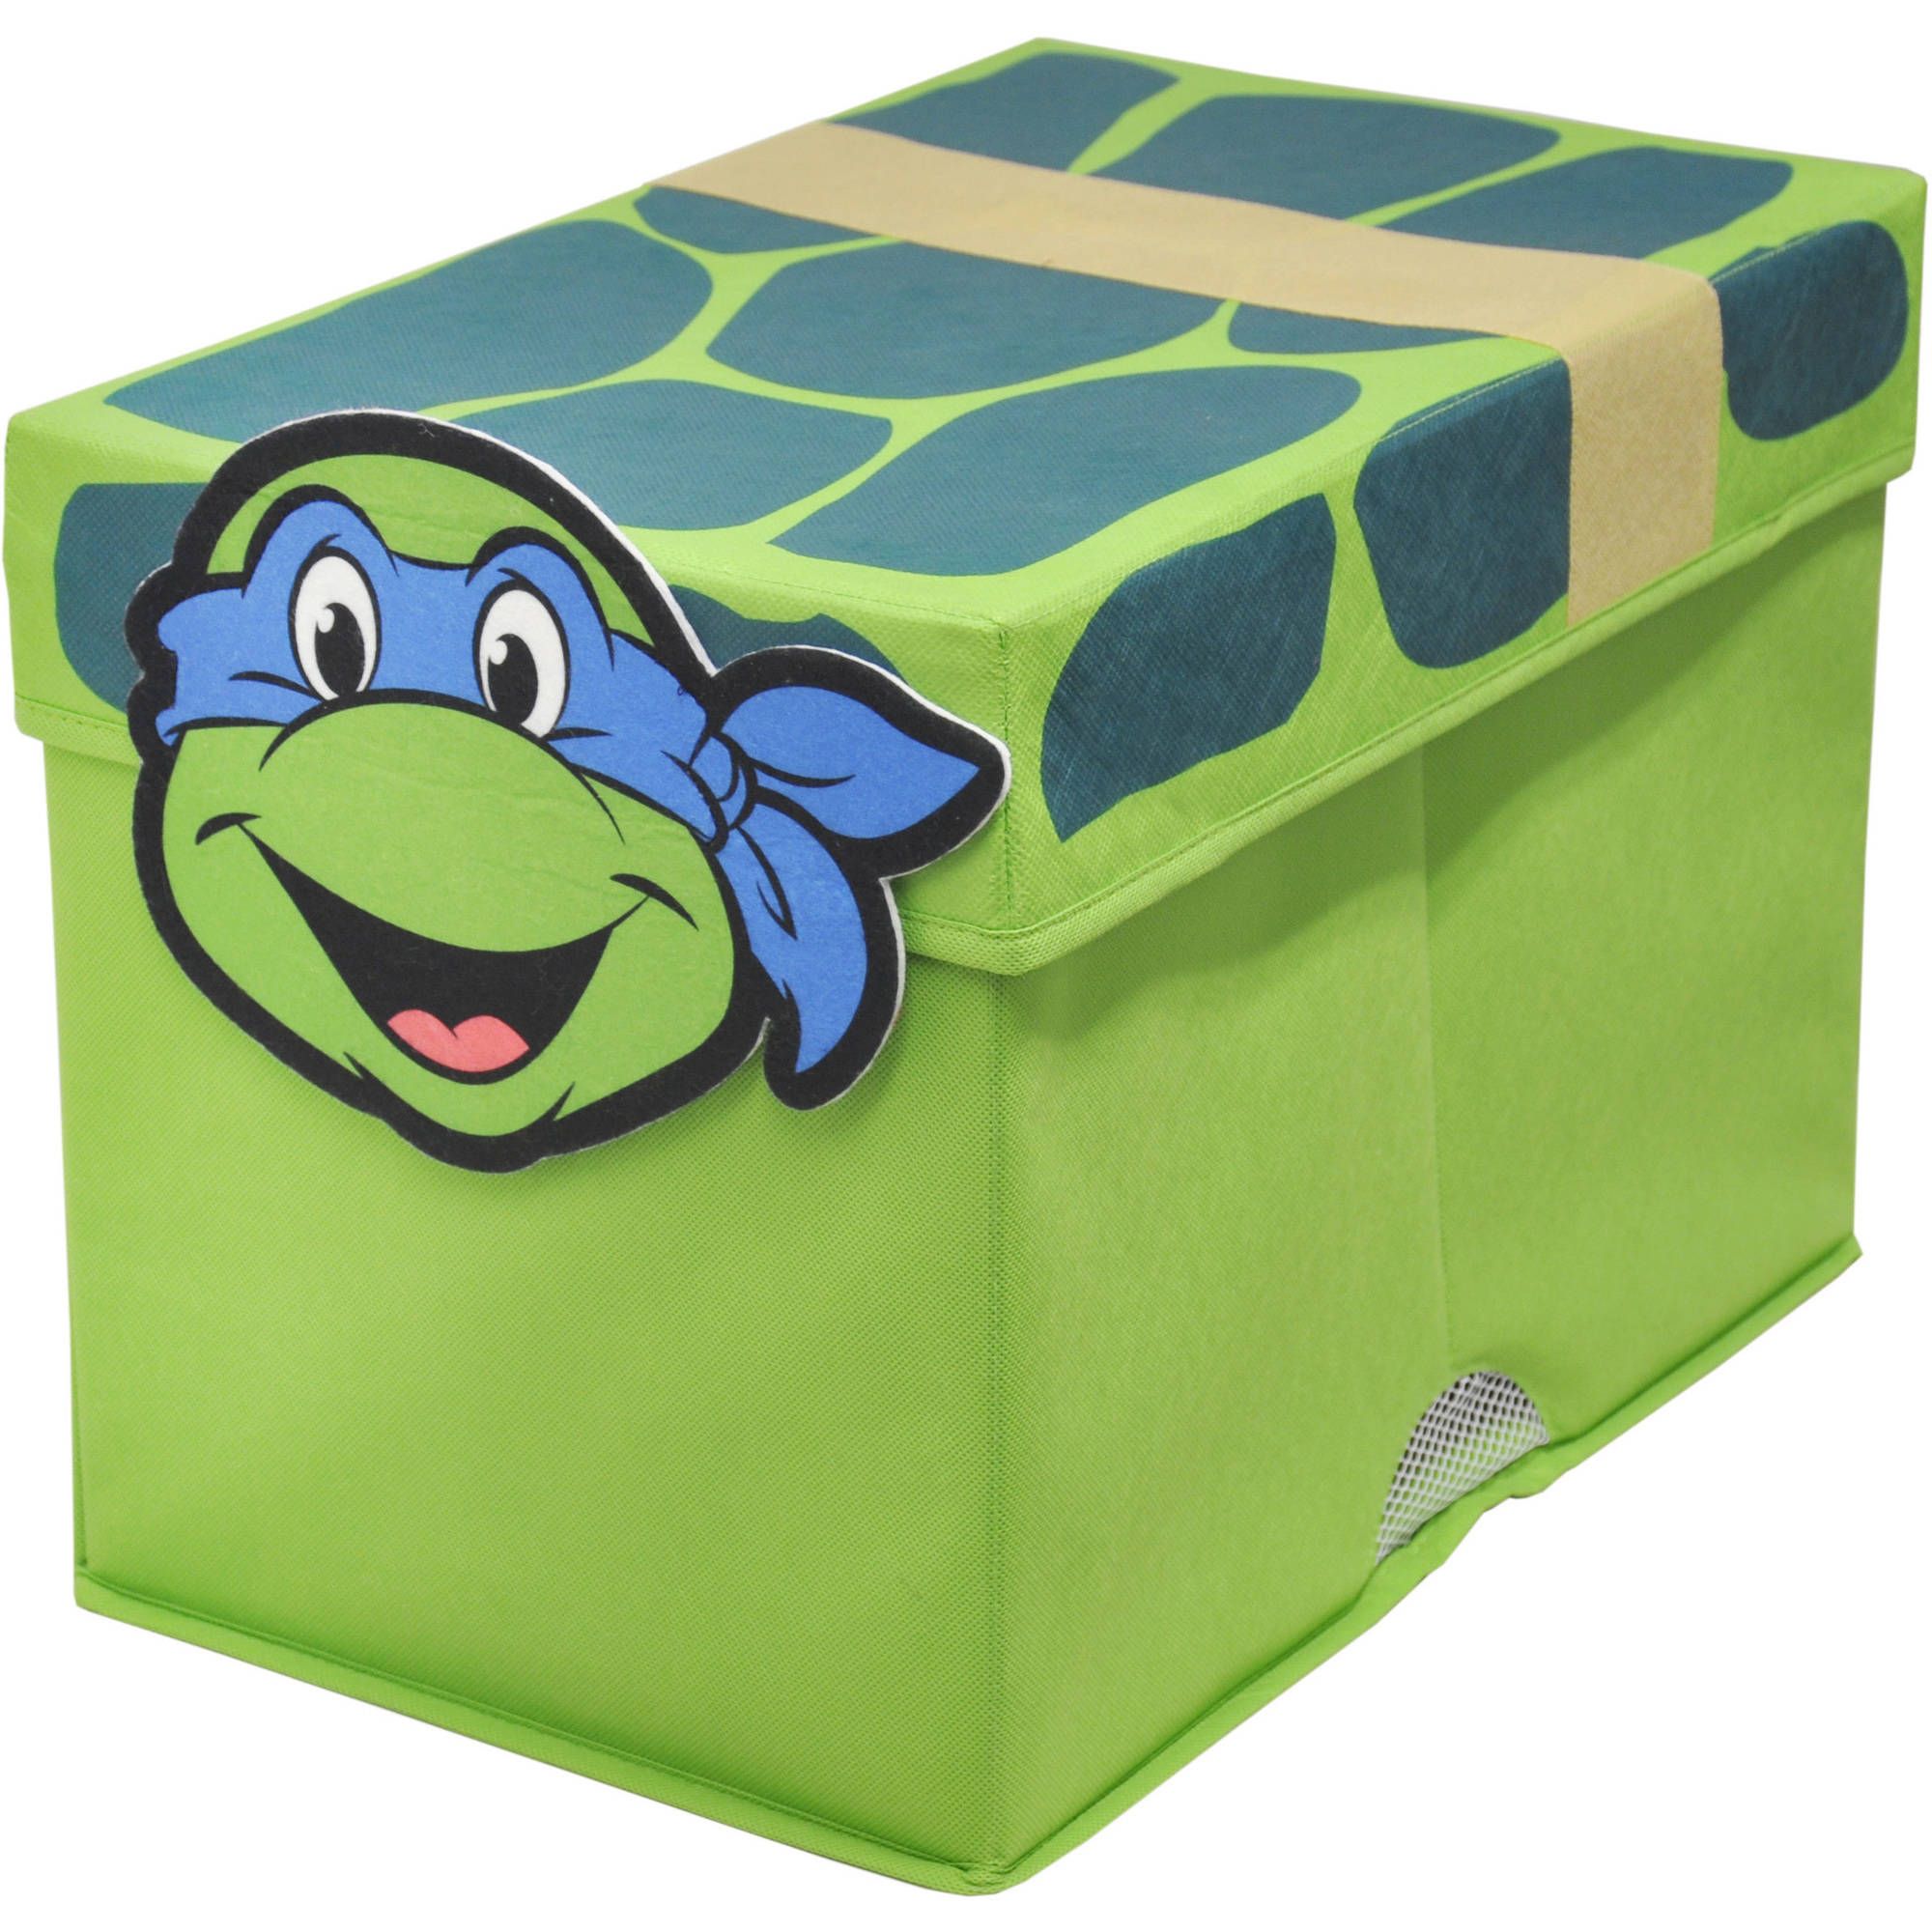 Nickelodeon Ninja Turtles Figural Toy Box